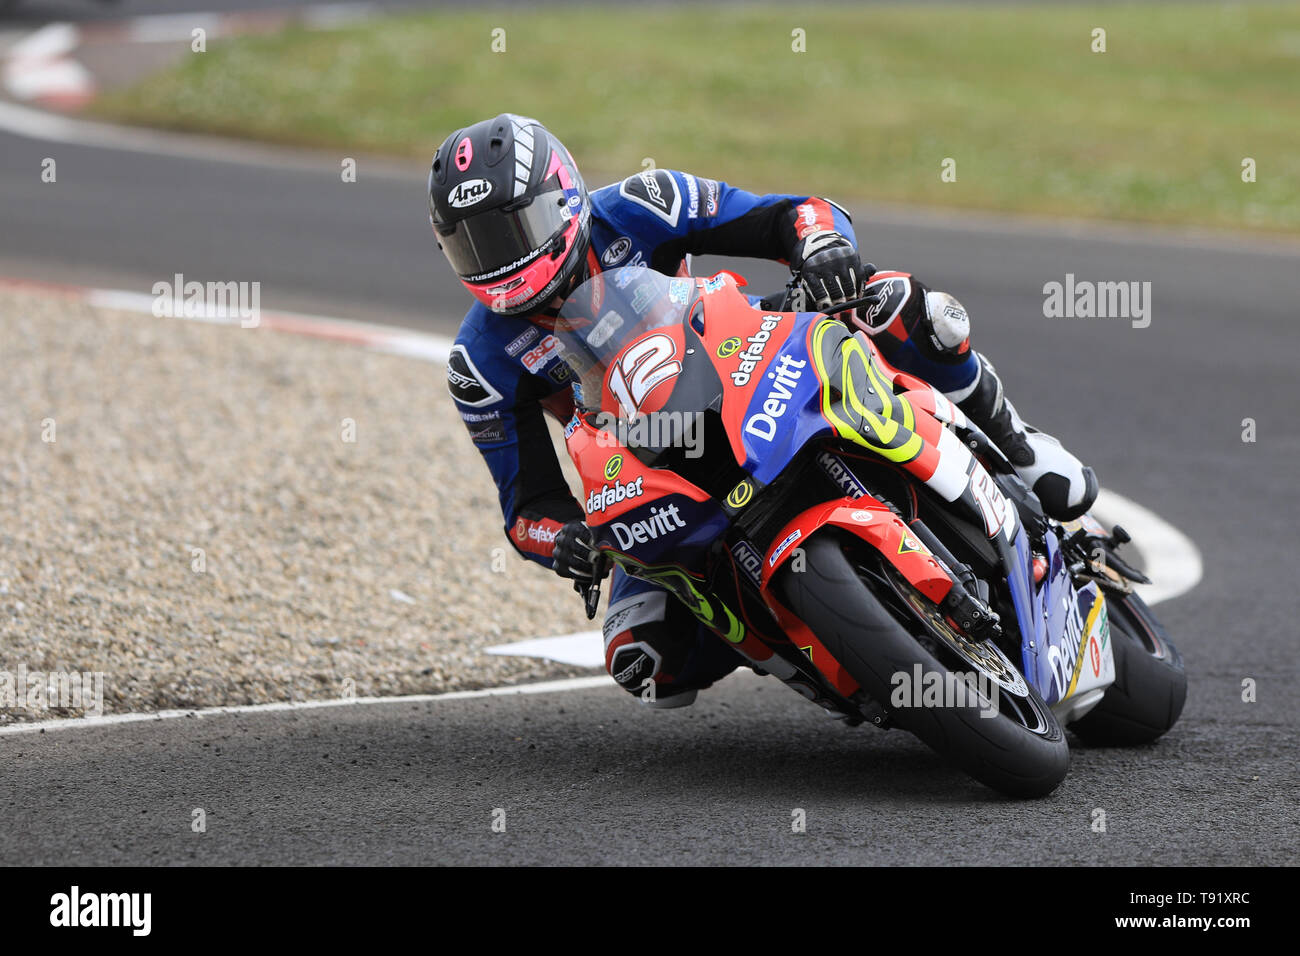 Portrush, Northern Ireland. 16th May, 2019. International North West 200 Motorcycle road racing, Thursday practice and evening racing; Paul Jordan on the RC Express Dafabet Devitt Racing Kawasaki during the SuperStock qualifying session Credit: Action Plus Sports/Alamy Live News - Stock Image